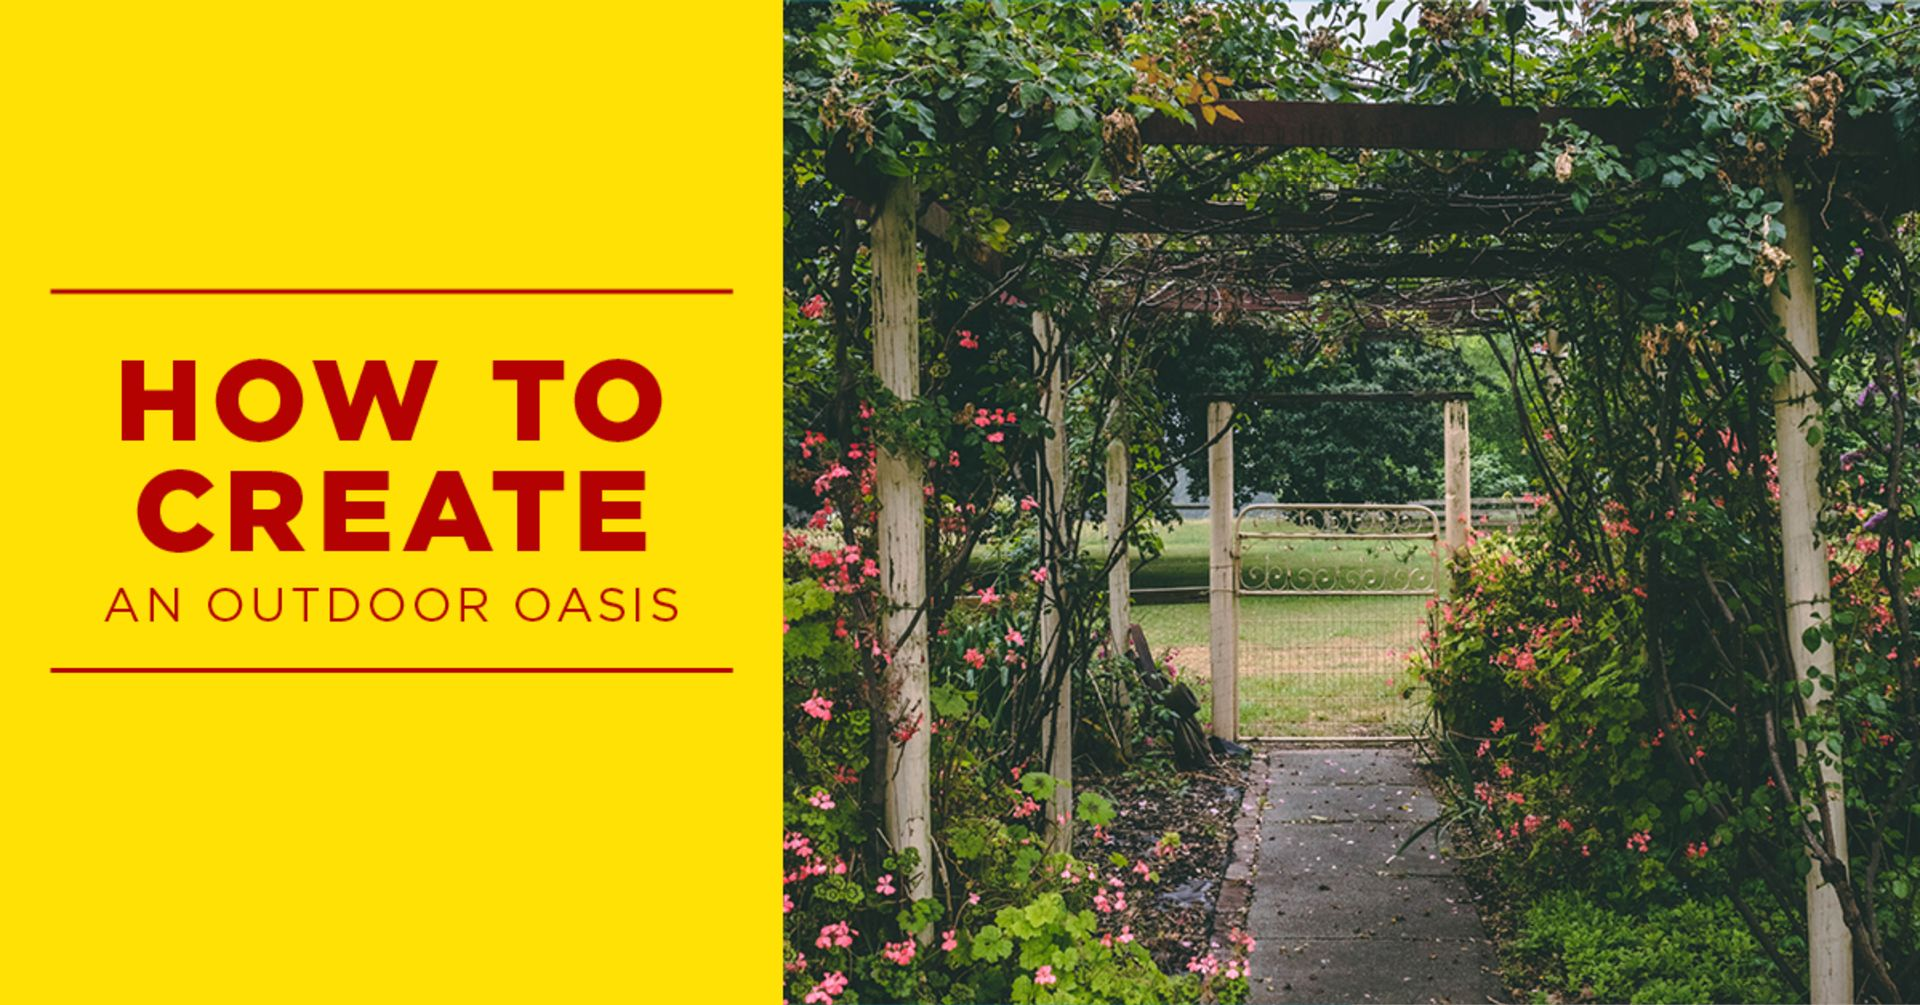 Escape to an Outdoor Oasis